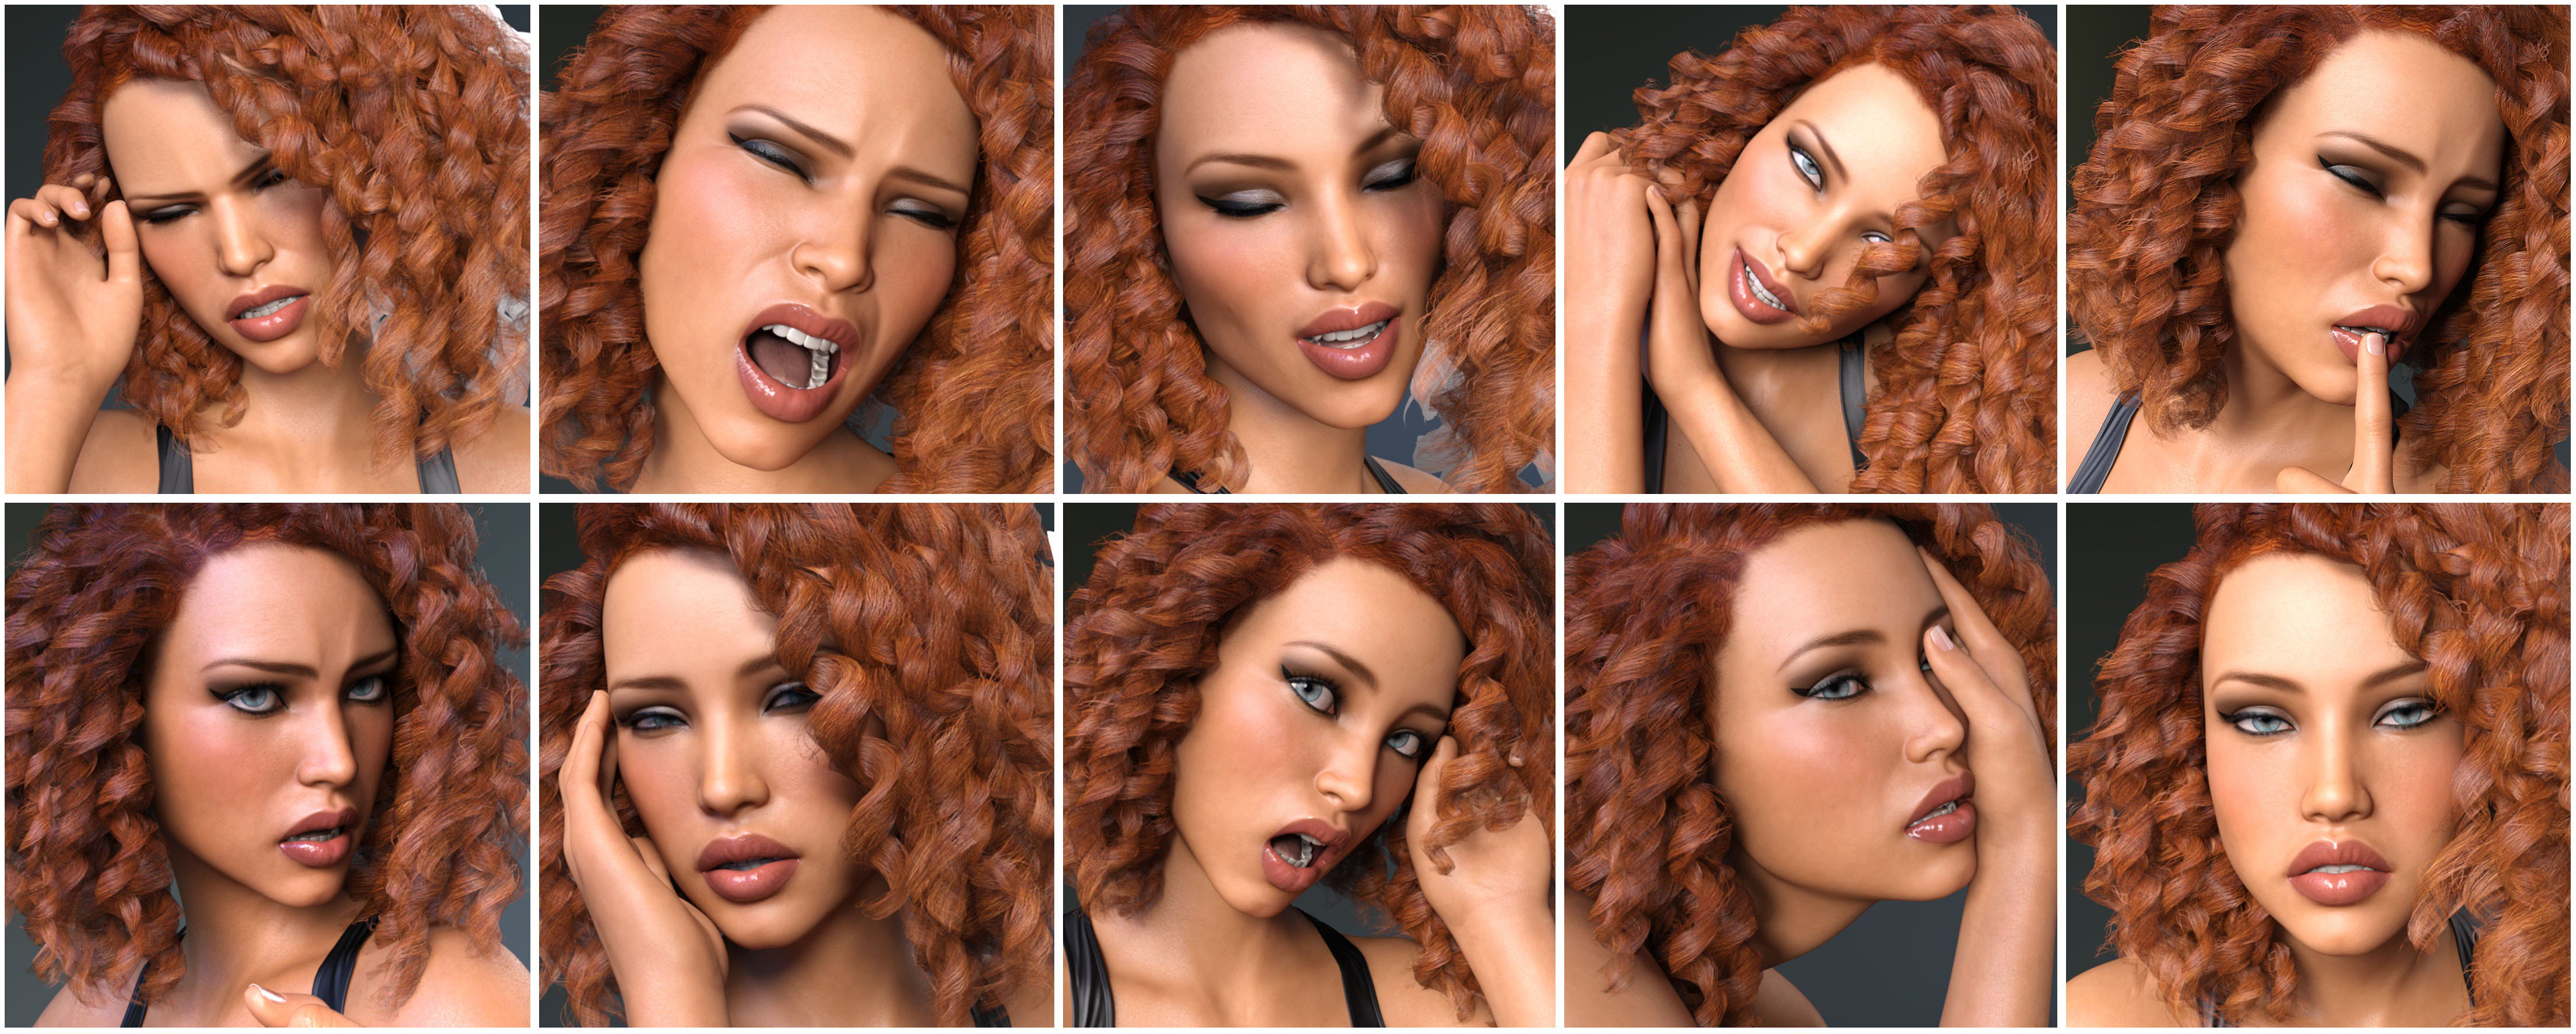 Z Pain and Pleasure Expressions for Genesis 3 and 8 Female